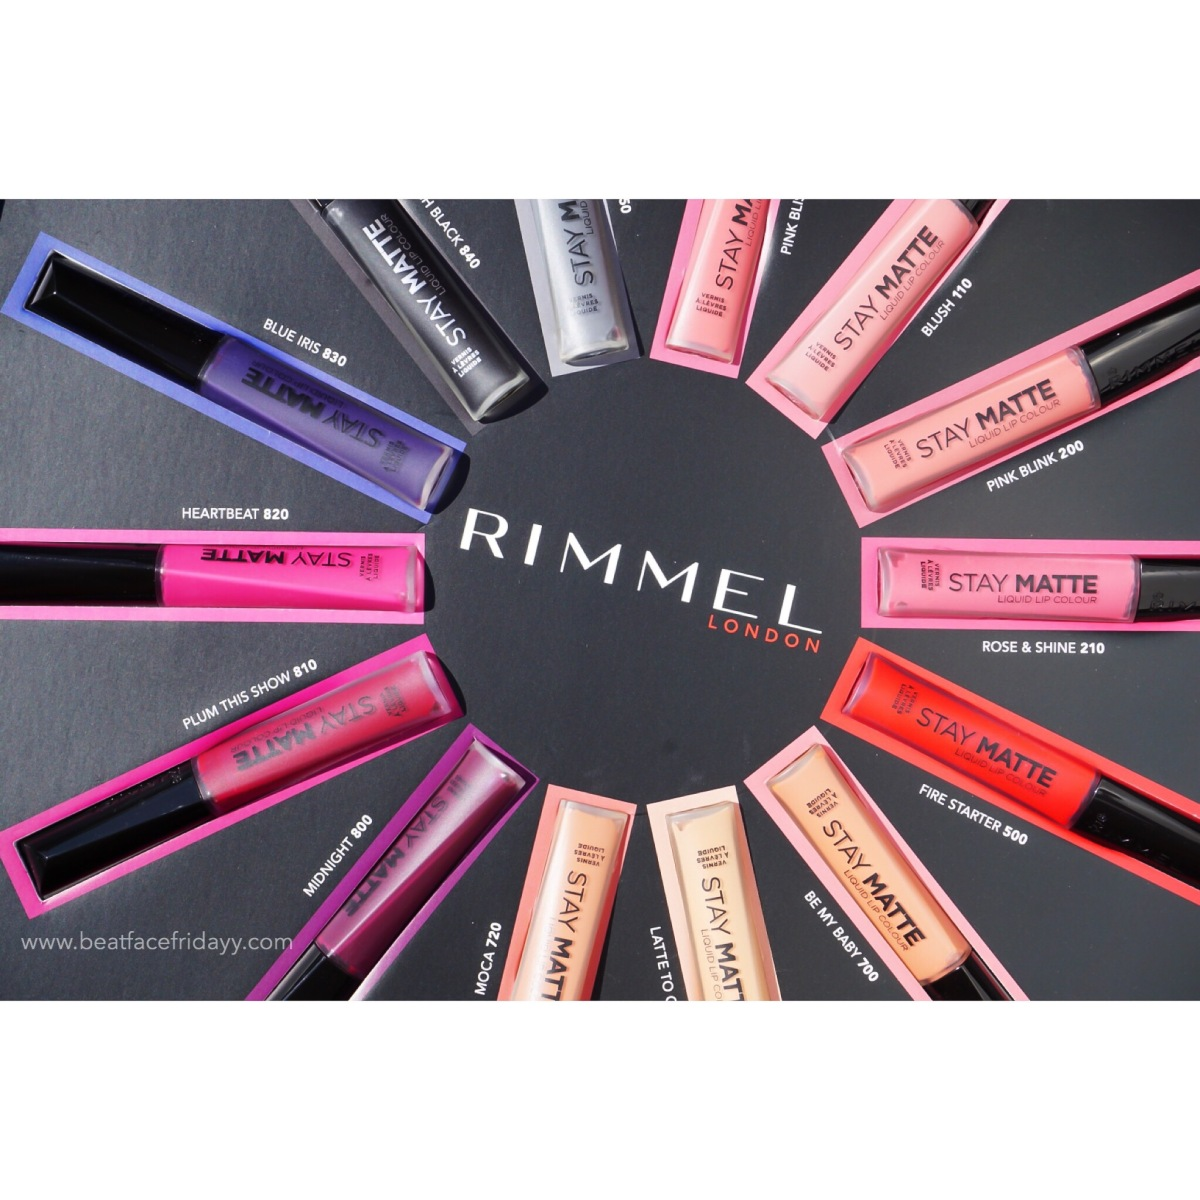 Rimmel London Stay Matte Liquid Lip Colour Pink Bliss, Blush, Pink Blush, Rose and Shine, Fire Starter, Be My Baby, Latte, Moca, Midnight, Plum This Show, Heartbeat, Blue Iris, Pitch Black, Shadow Swatch (ULTA Exclusive)